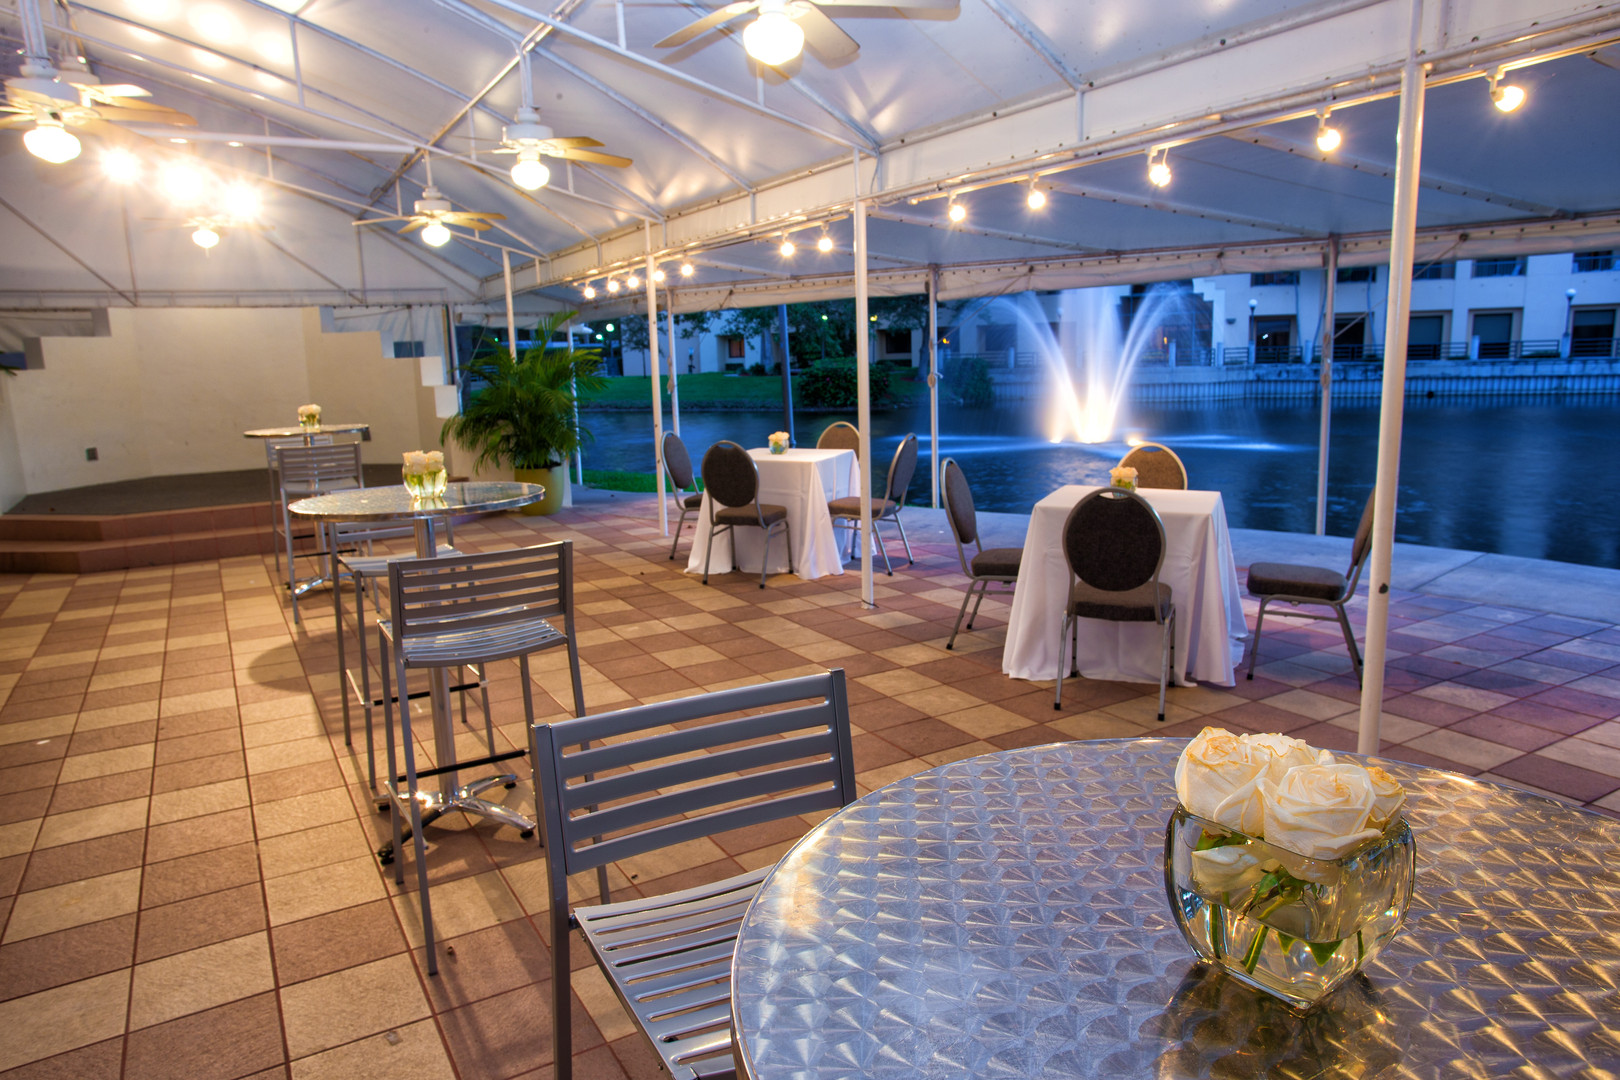 Lakeside Terrace Boca Raton